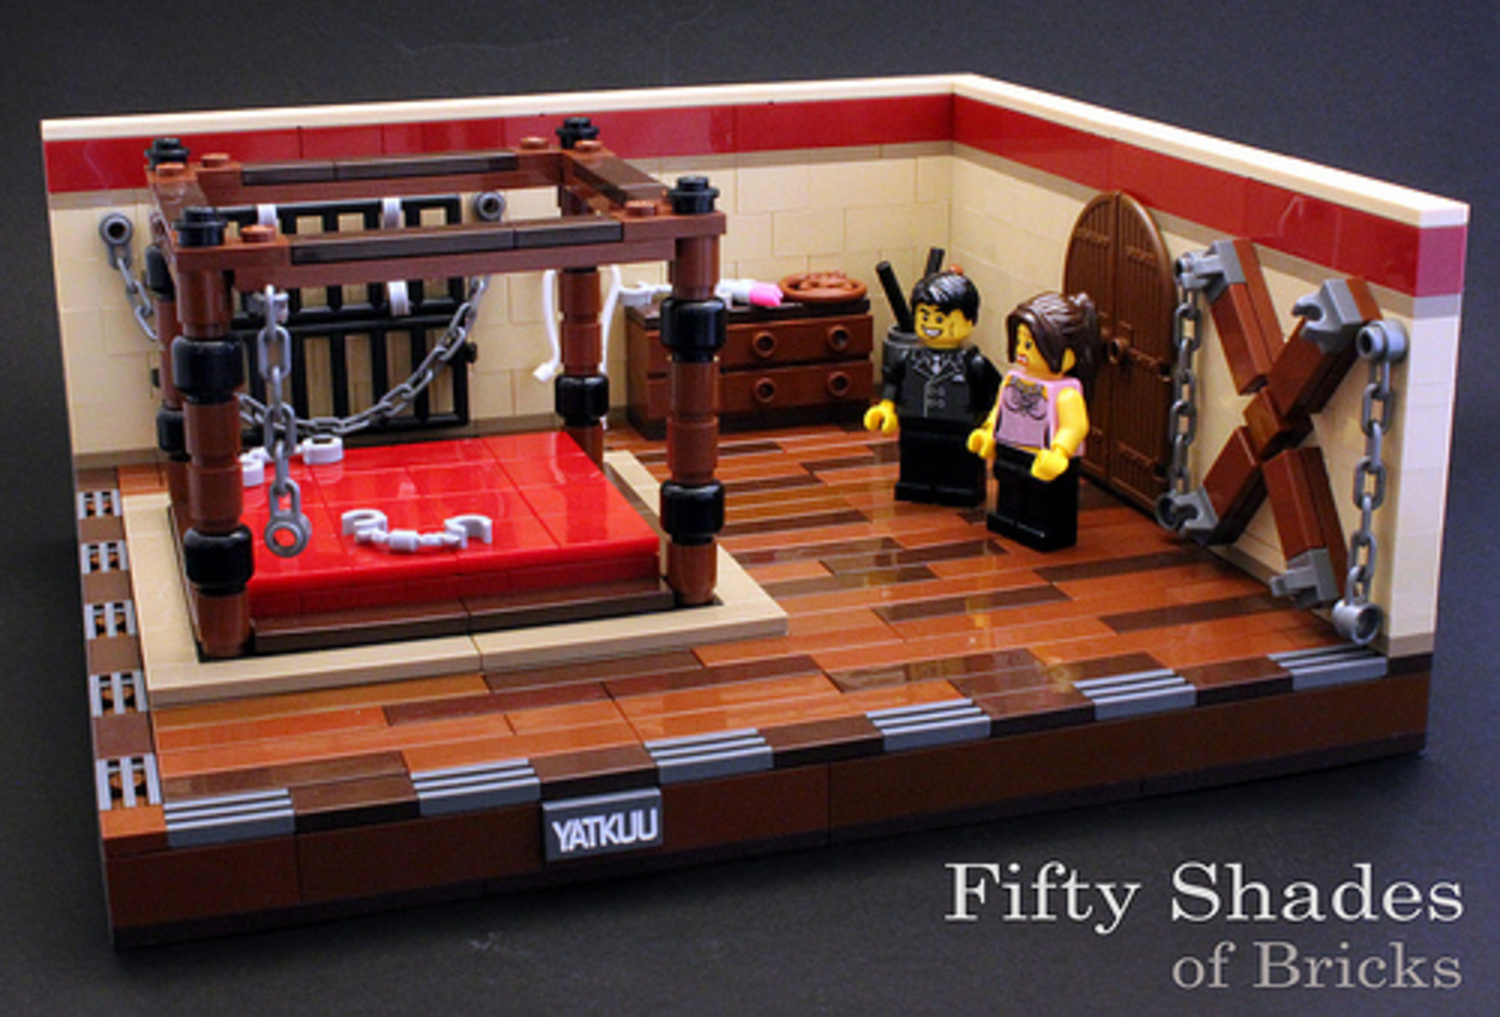 Fifty Shades Of Bricks: The Best Lego Parody Ever